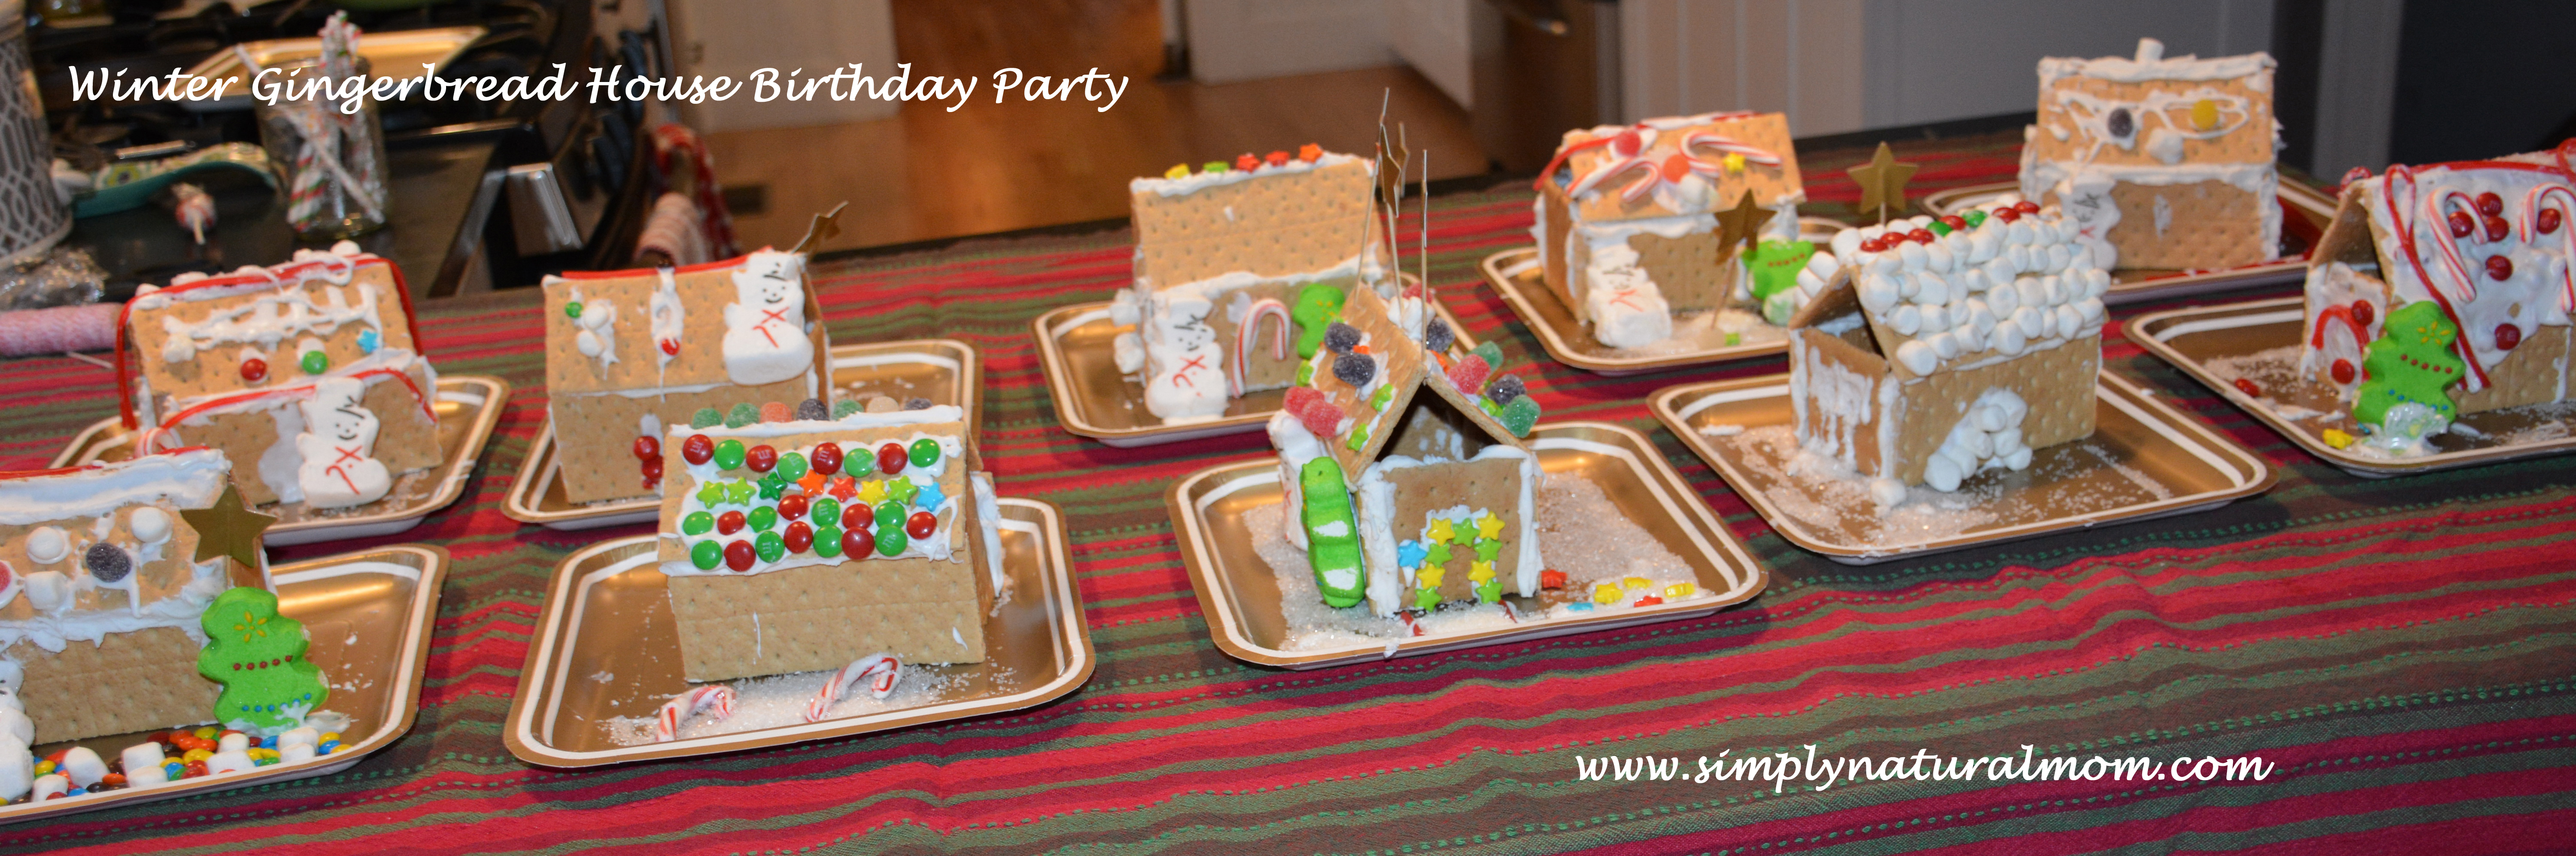 Premade Gingerbread Houses Winter Birthday Party Full Of Crafts And Fun Simply Natural Mom